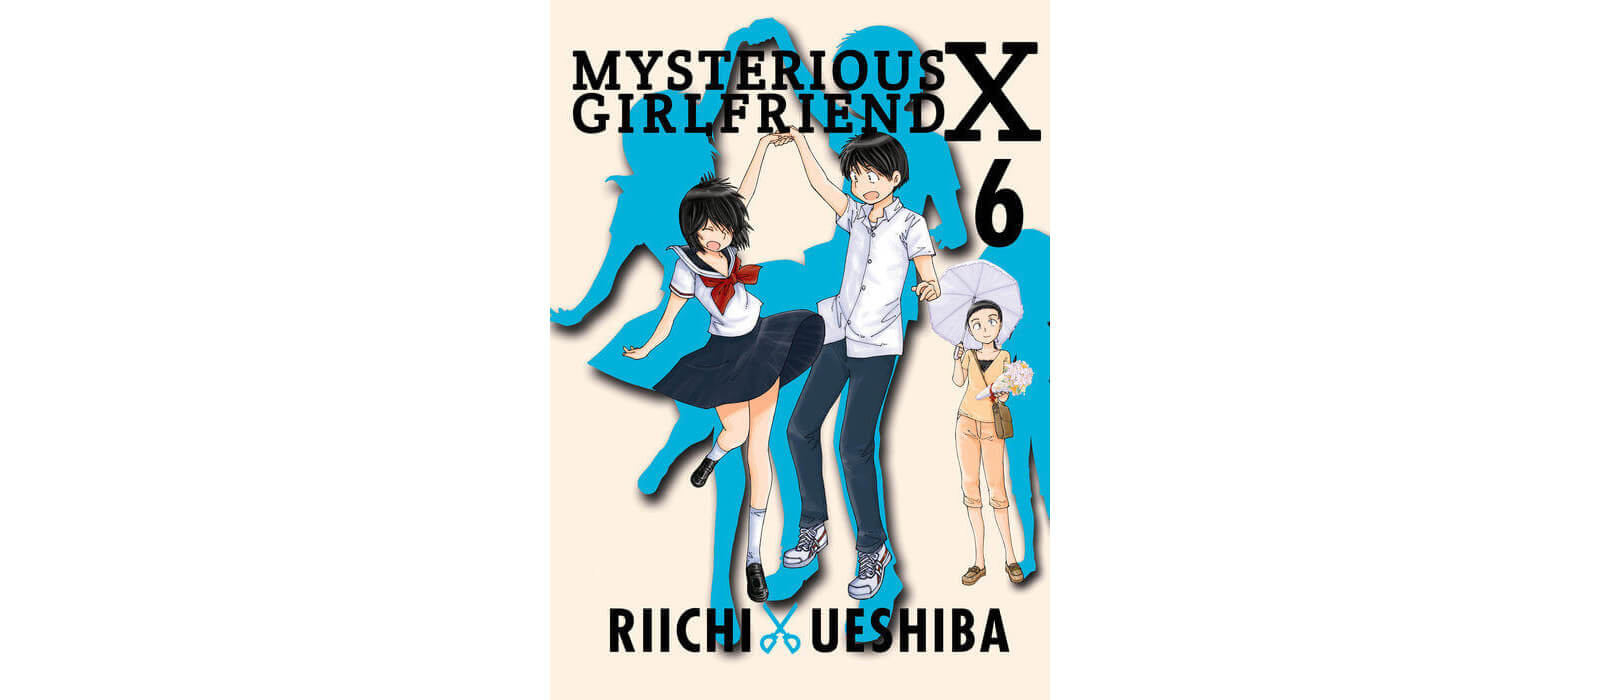 June 2017 Manga Releases Mysterious - Girlfriend X Volume 6